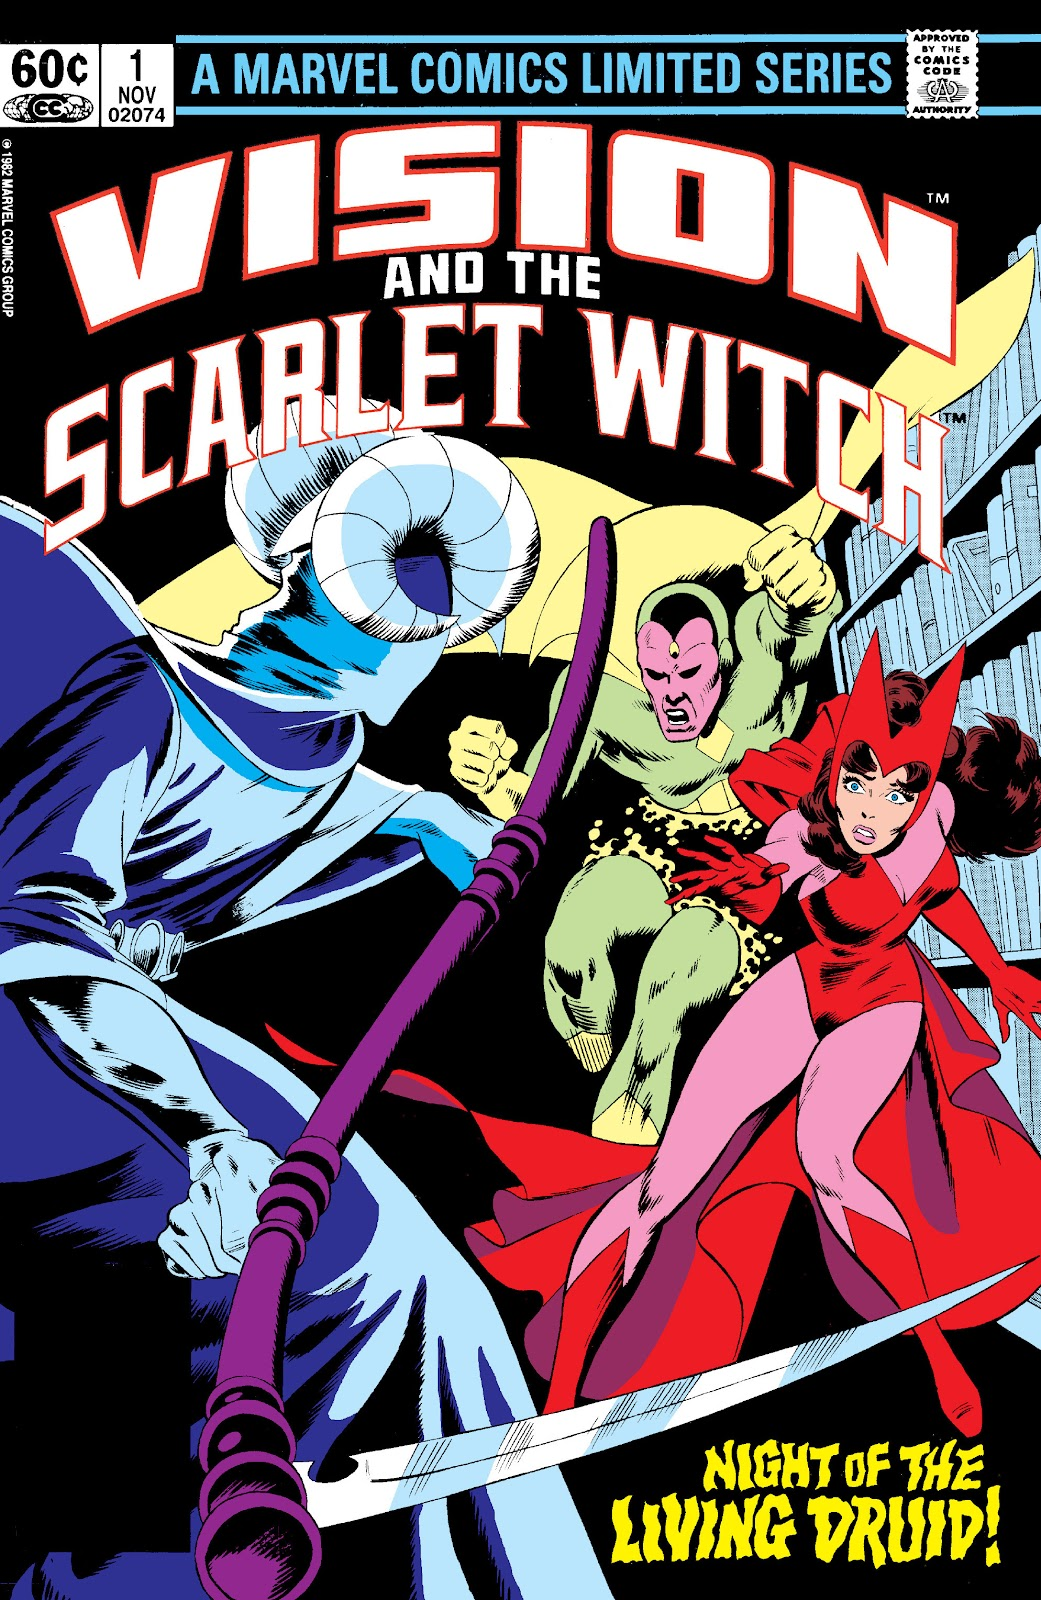 The Vision and the Scarlet Witch (1982) issue 1 - Page 1